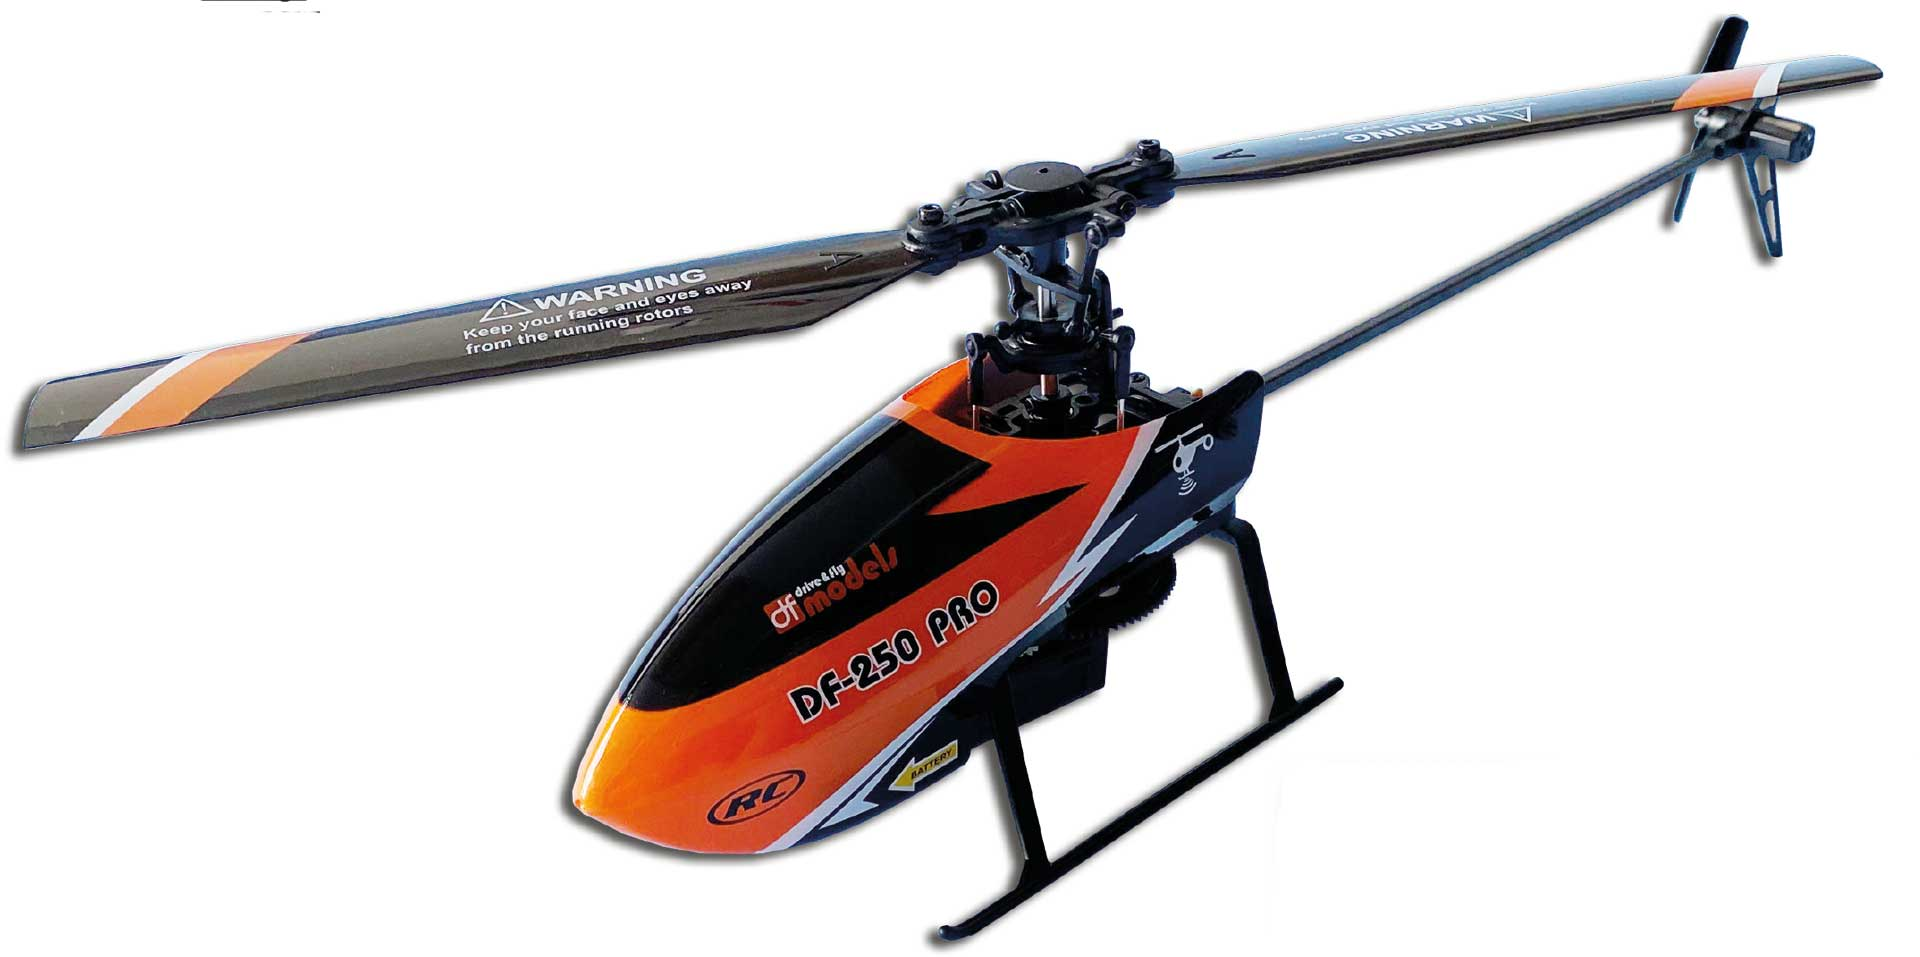 DRIVE & FLY MODELS DF-250 Helicopter RTF 2,4GHz Hubschrauber / Helikopter